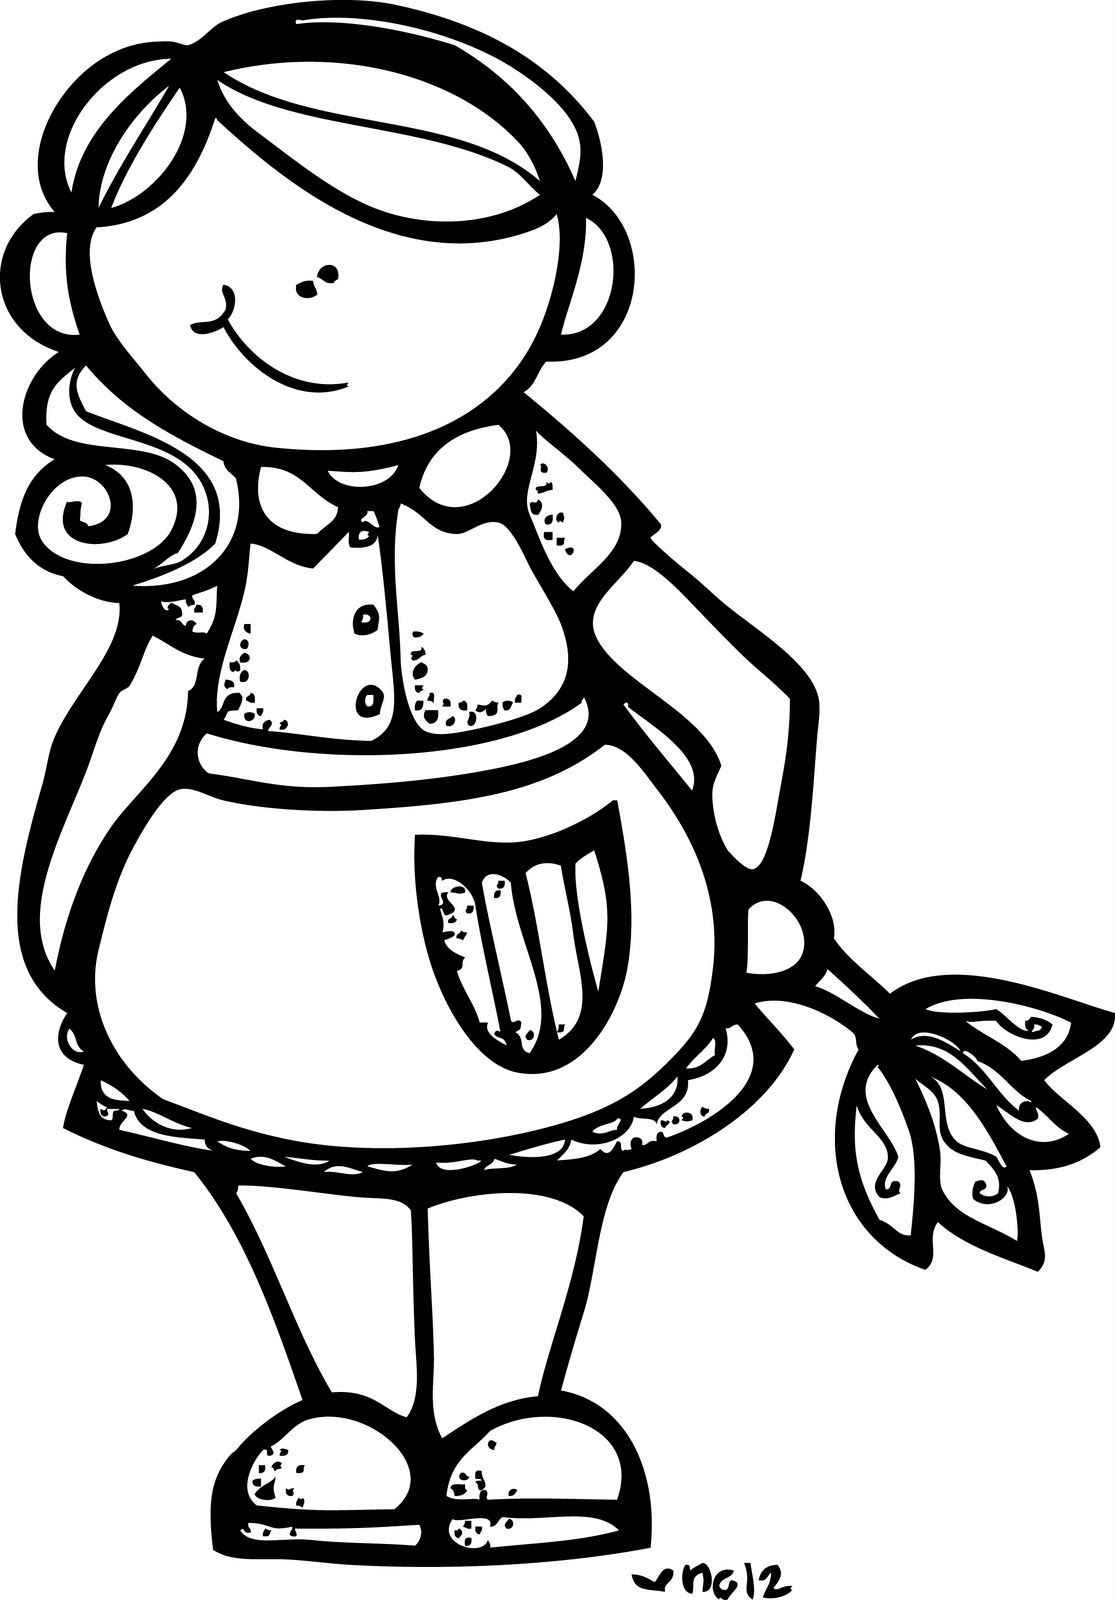 Slant eye maid clipart.